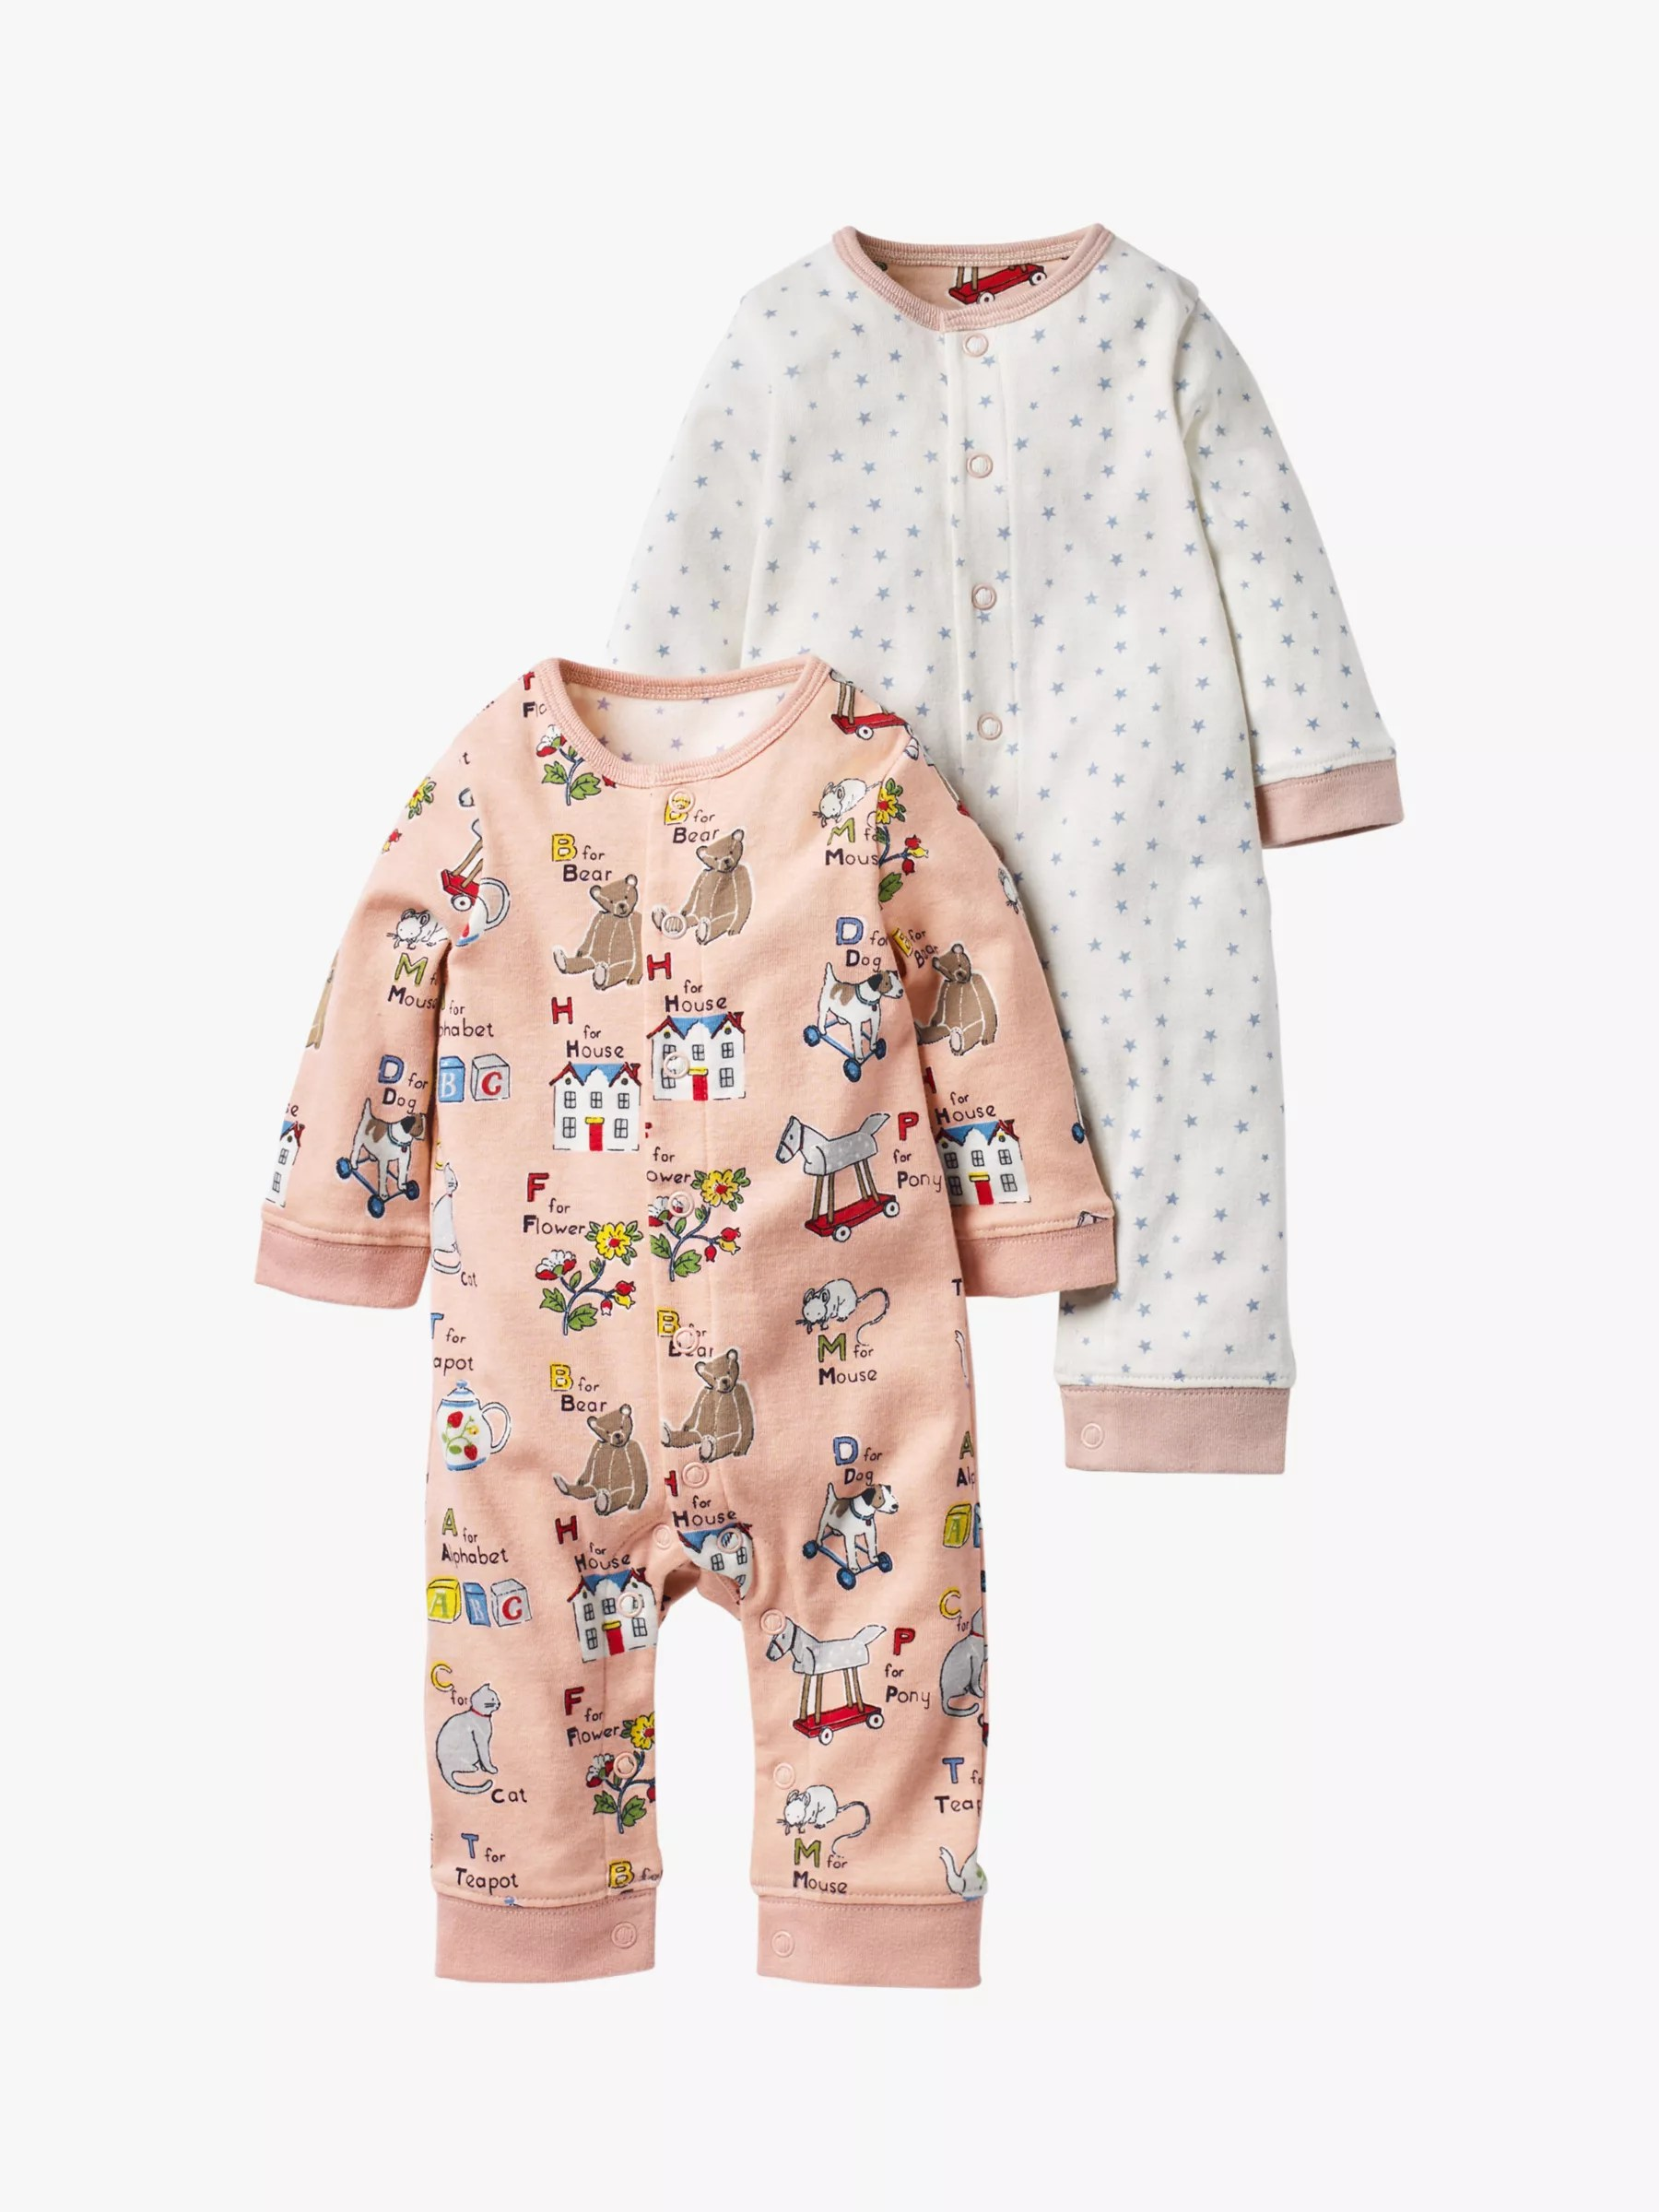 Boden 24 Mini Boden Baby Twin Abc Romper Pack Of 2 Multi At John Lewis